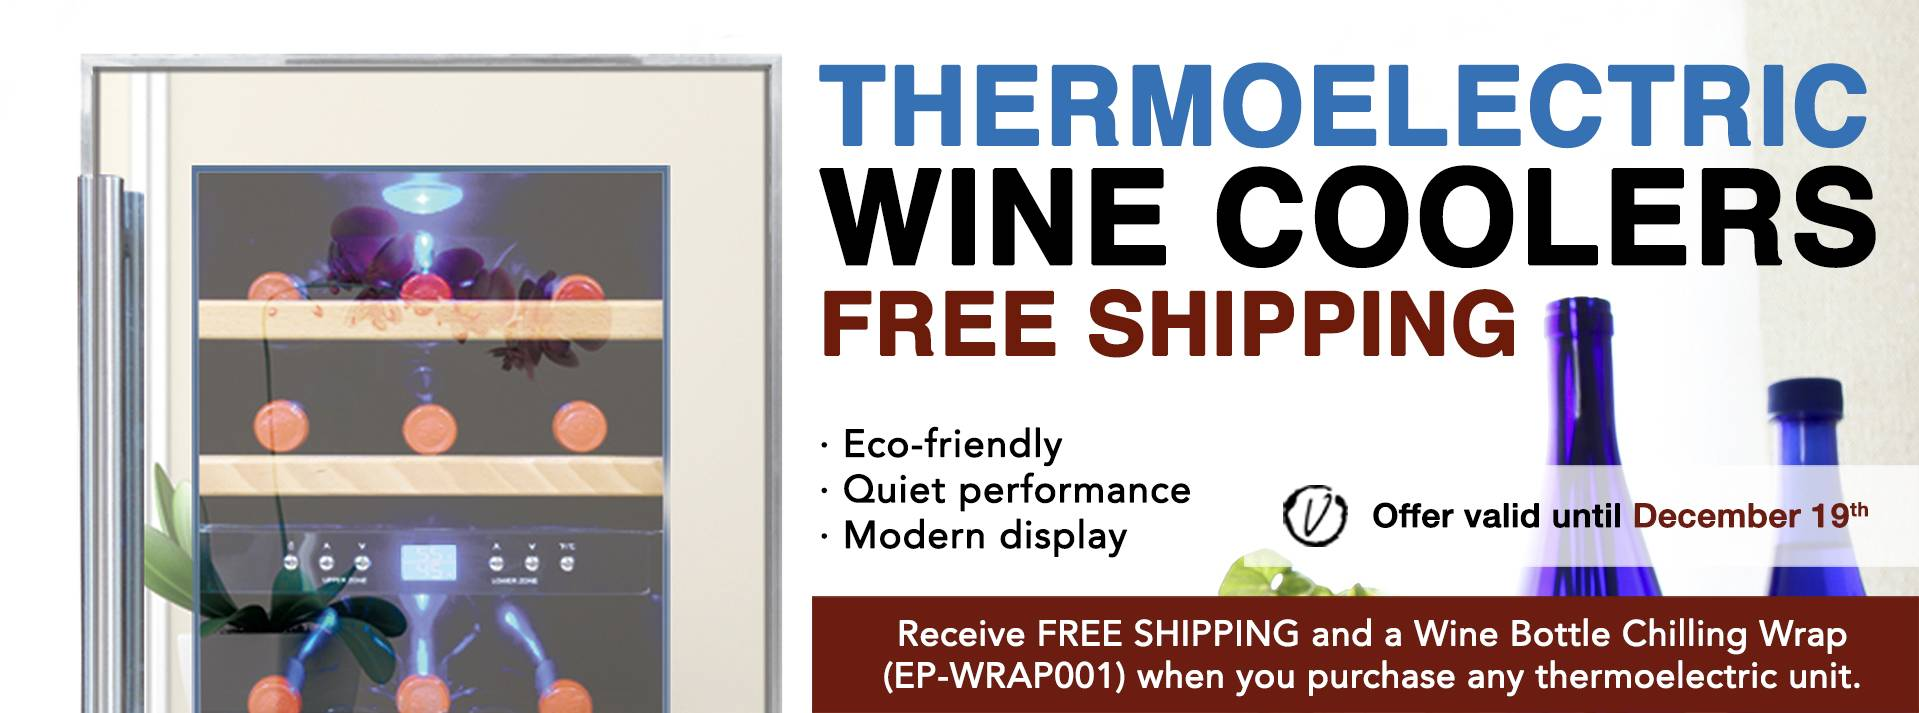 Free Shipping on Thermoelectric Wine Coolers